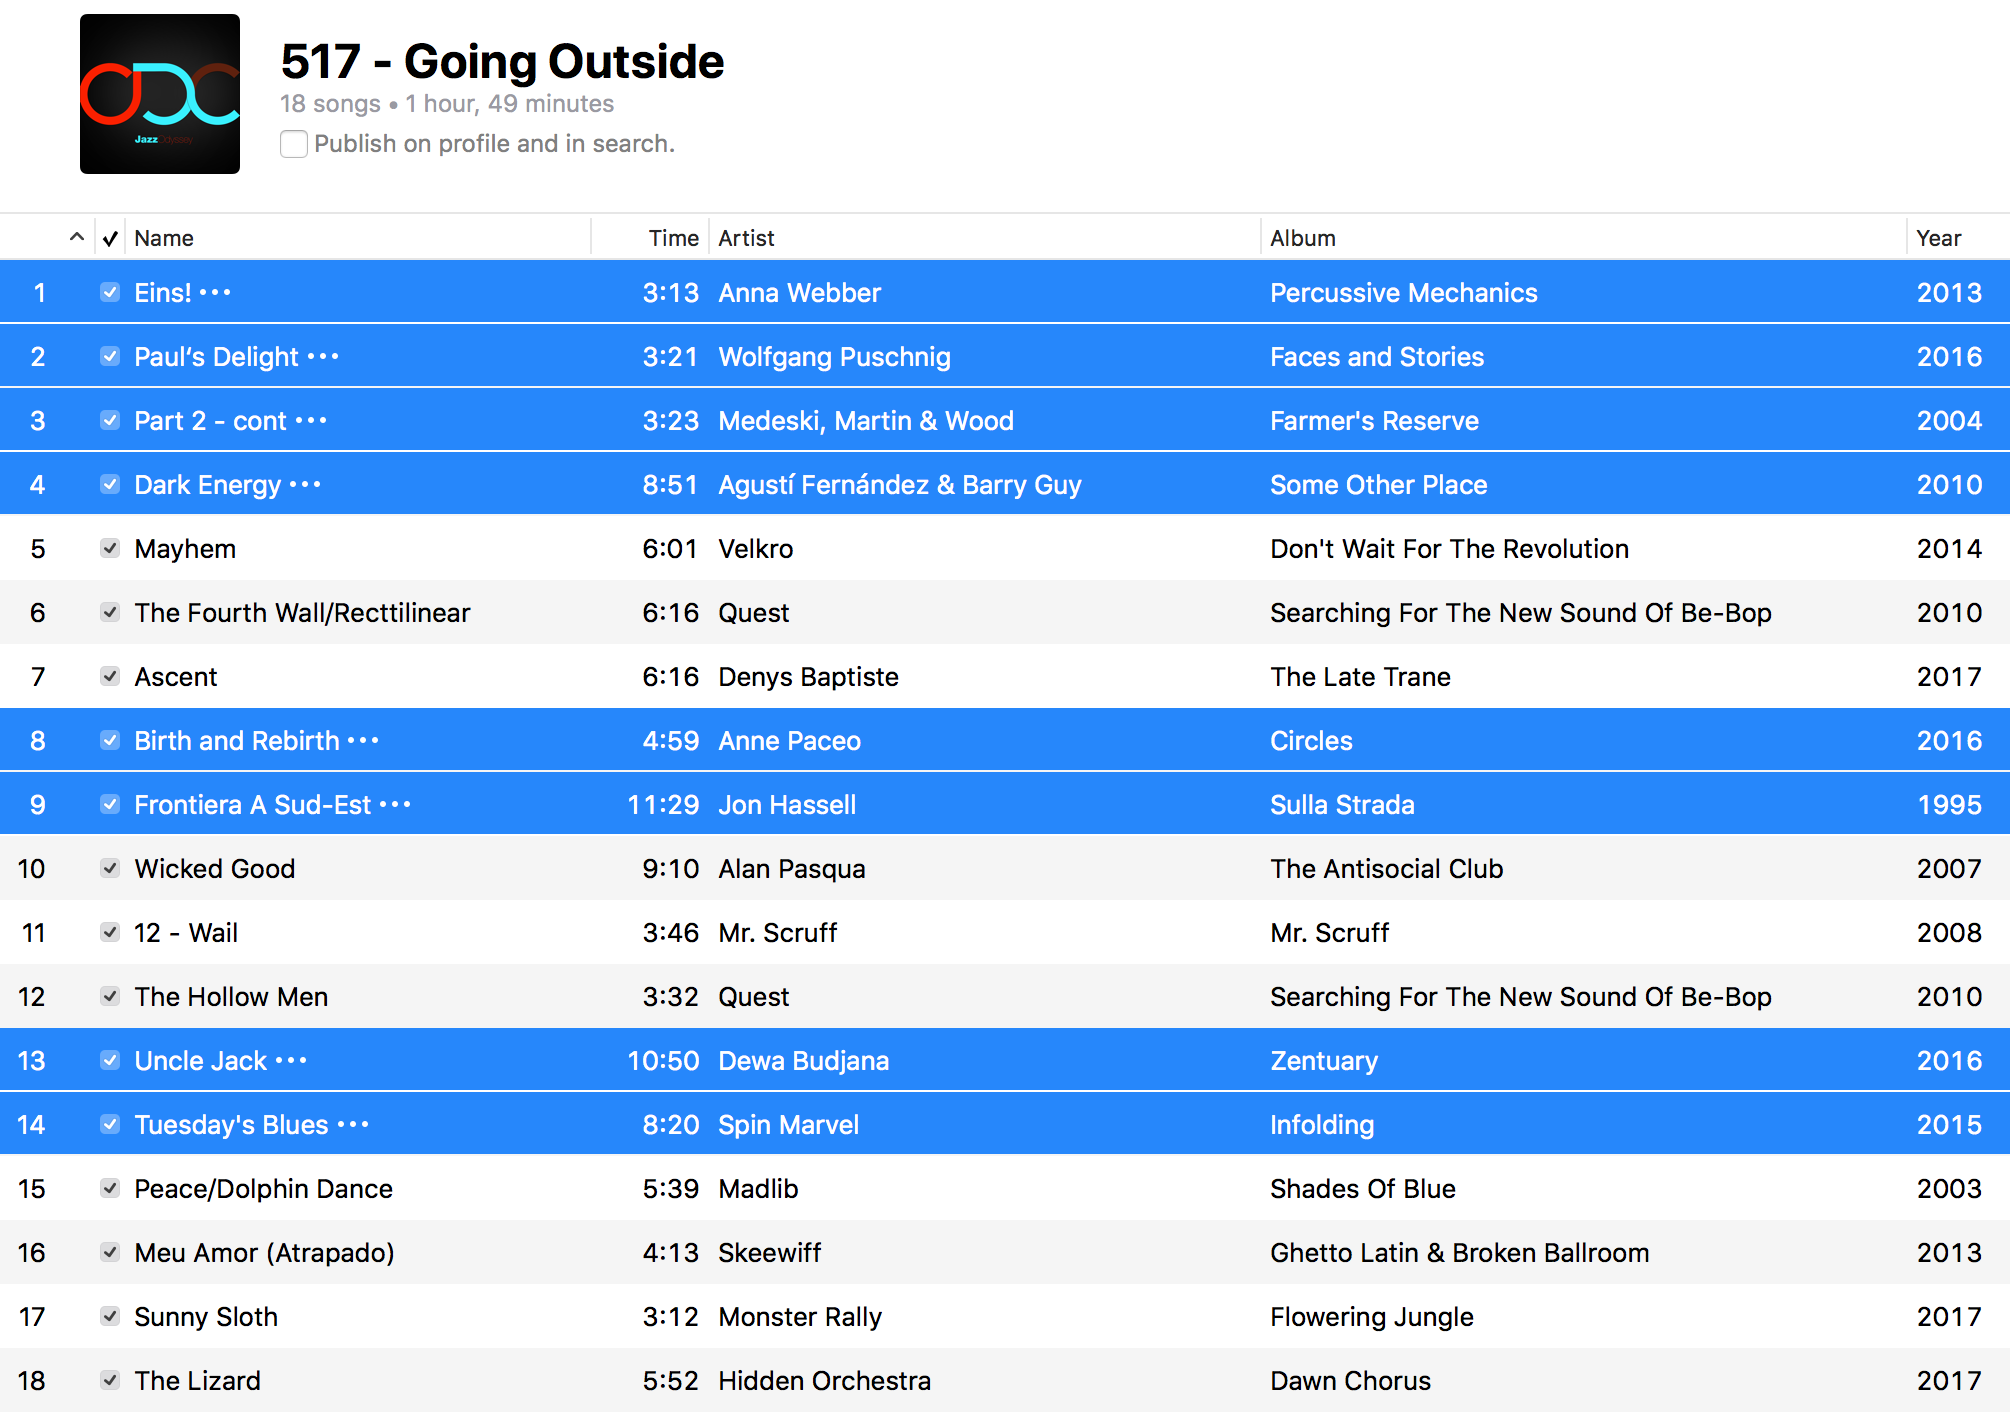 Jazz ODC #517 - Going Outside - Playlist